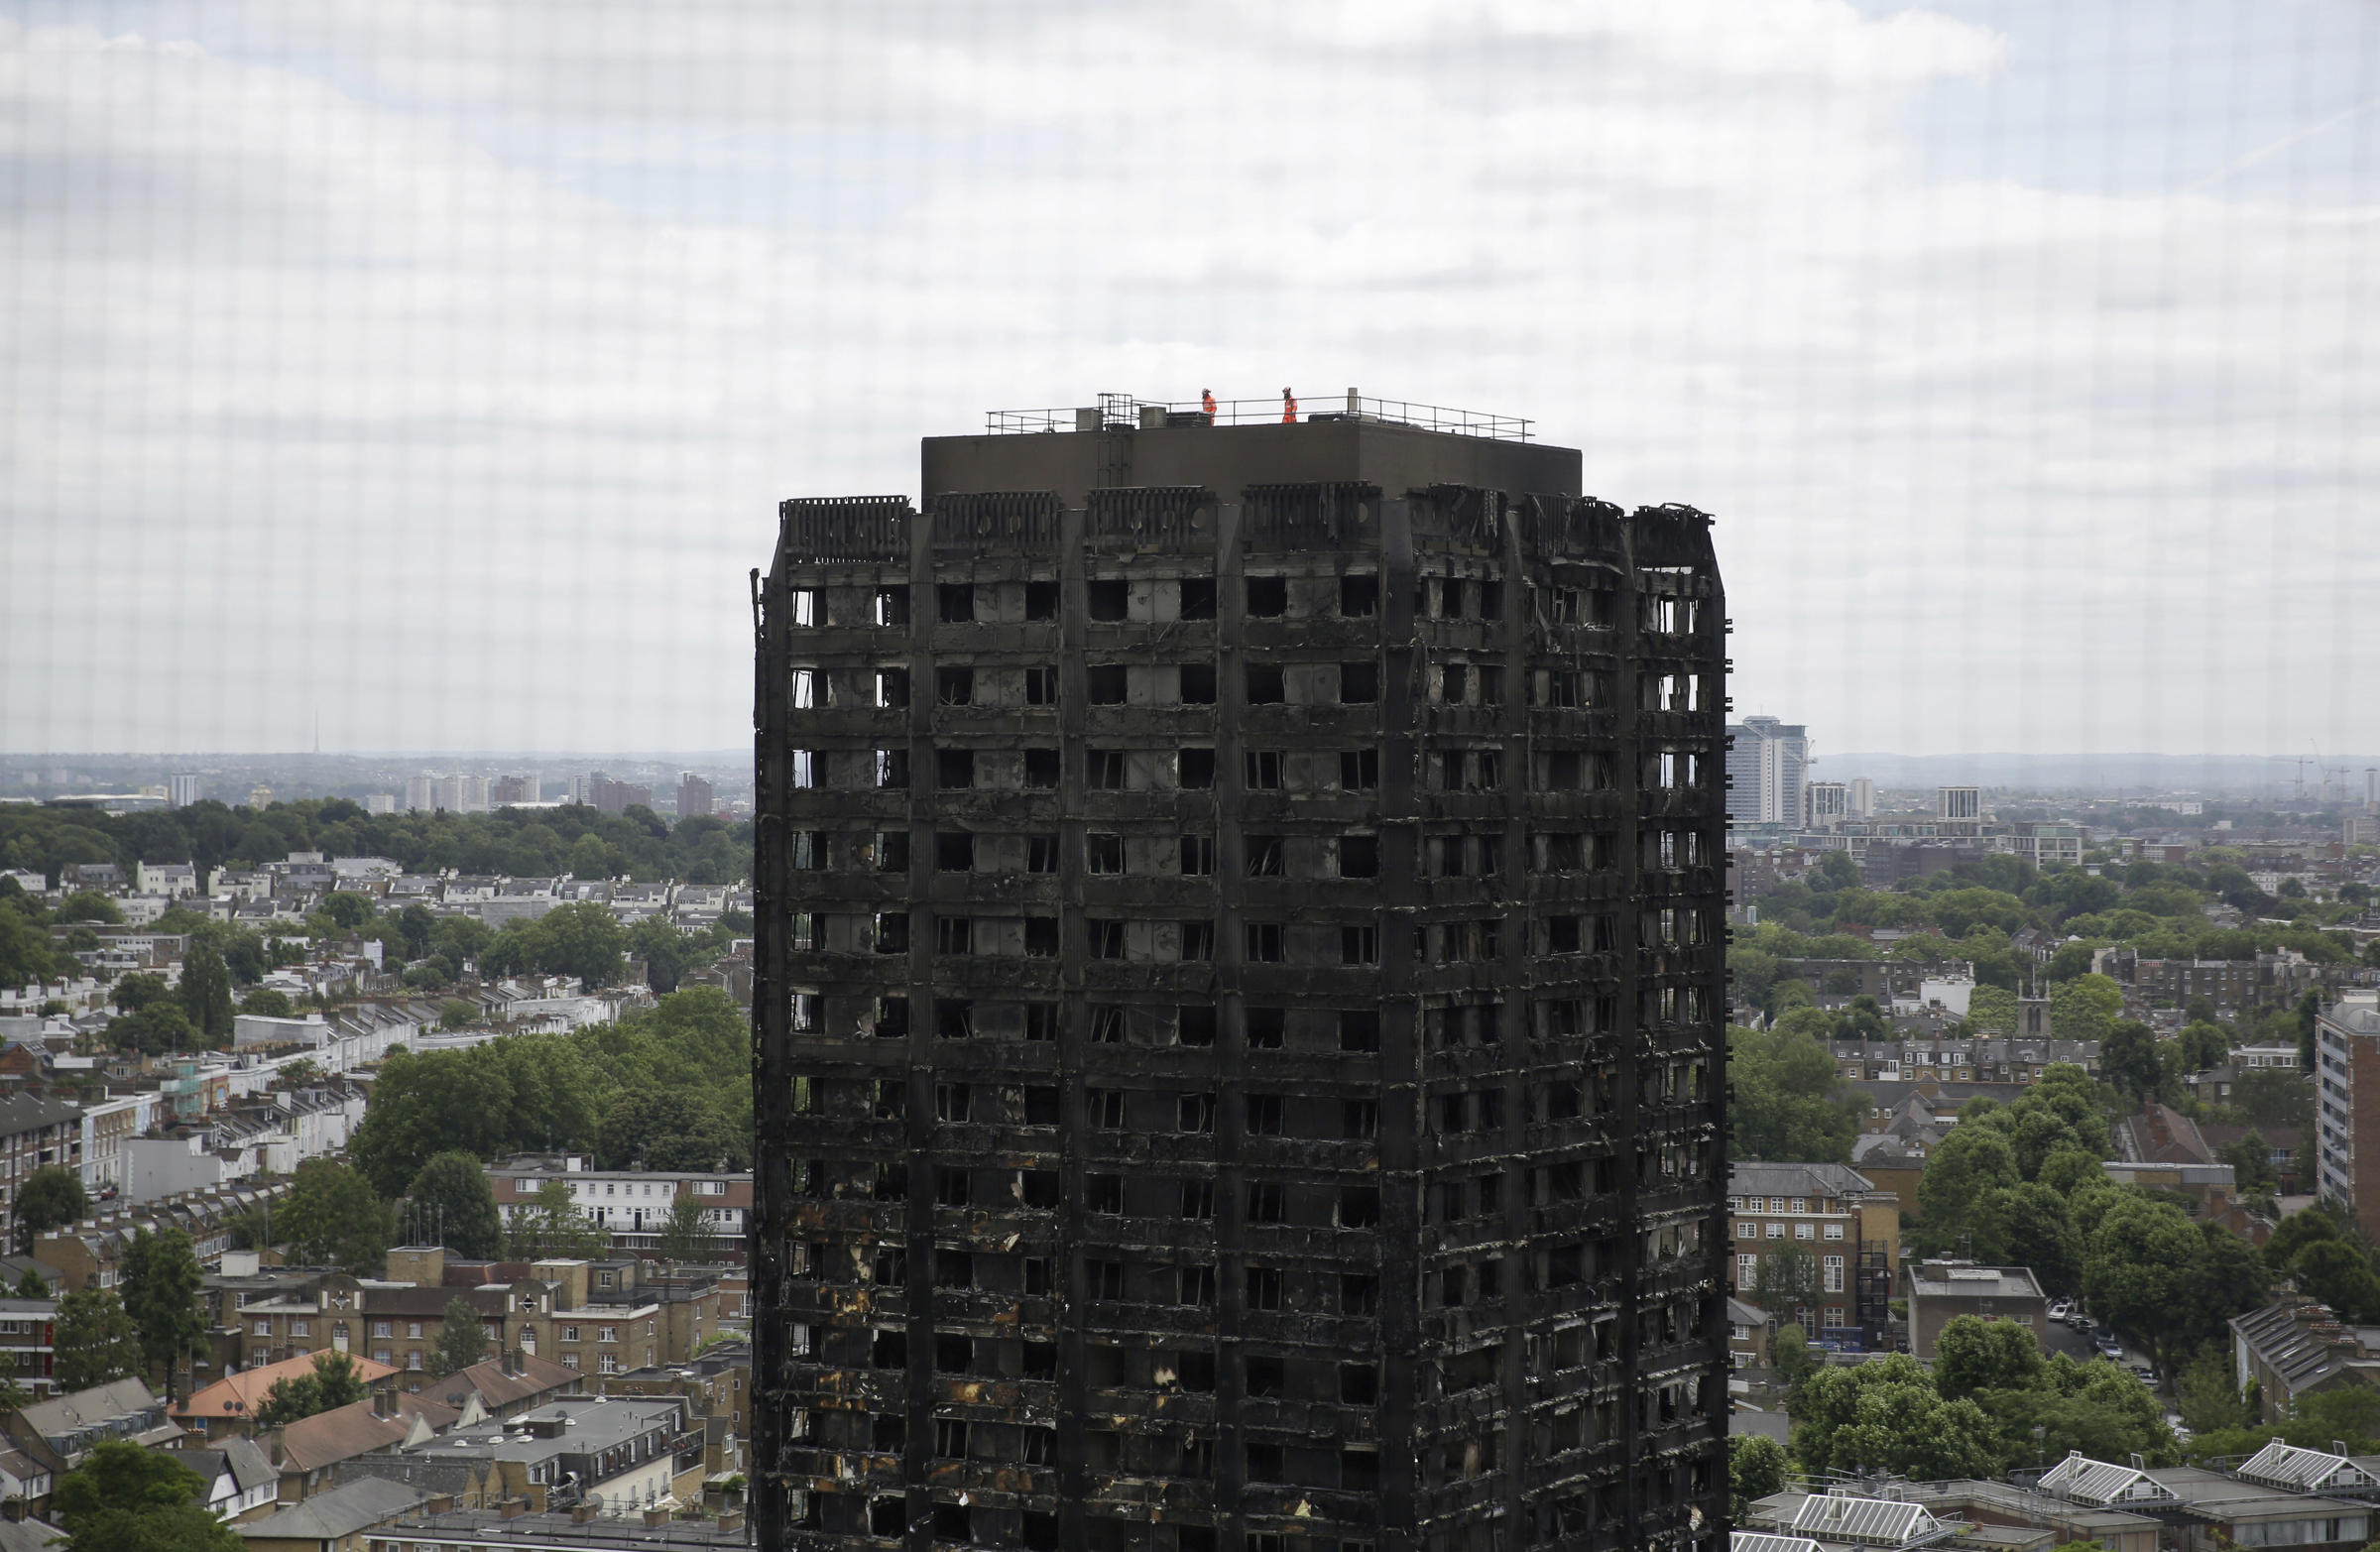 Grenfell Tower relief effort has been effective, insists council leader